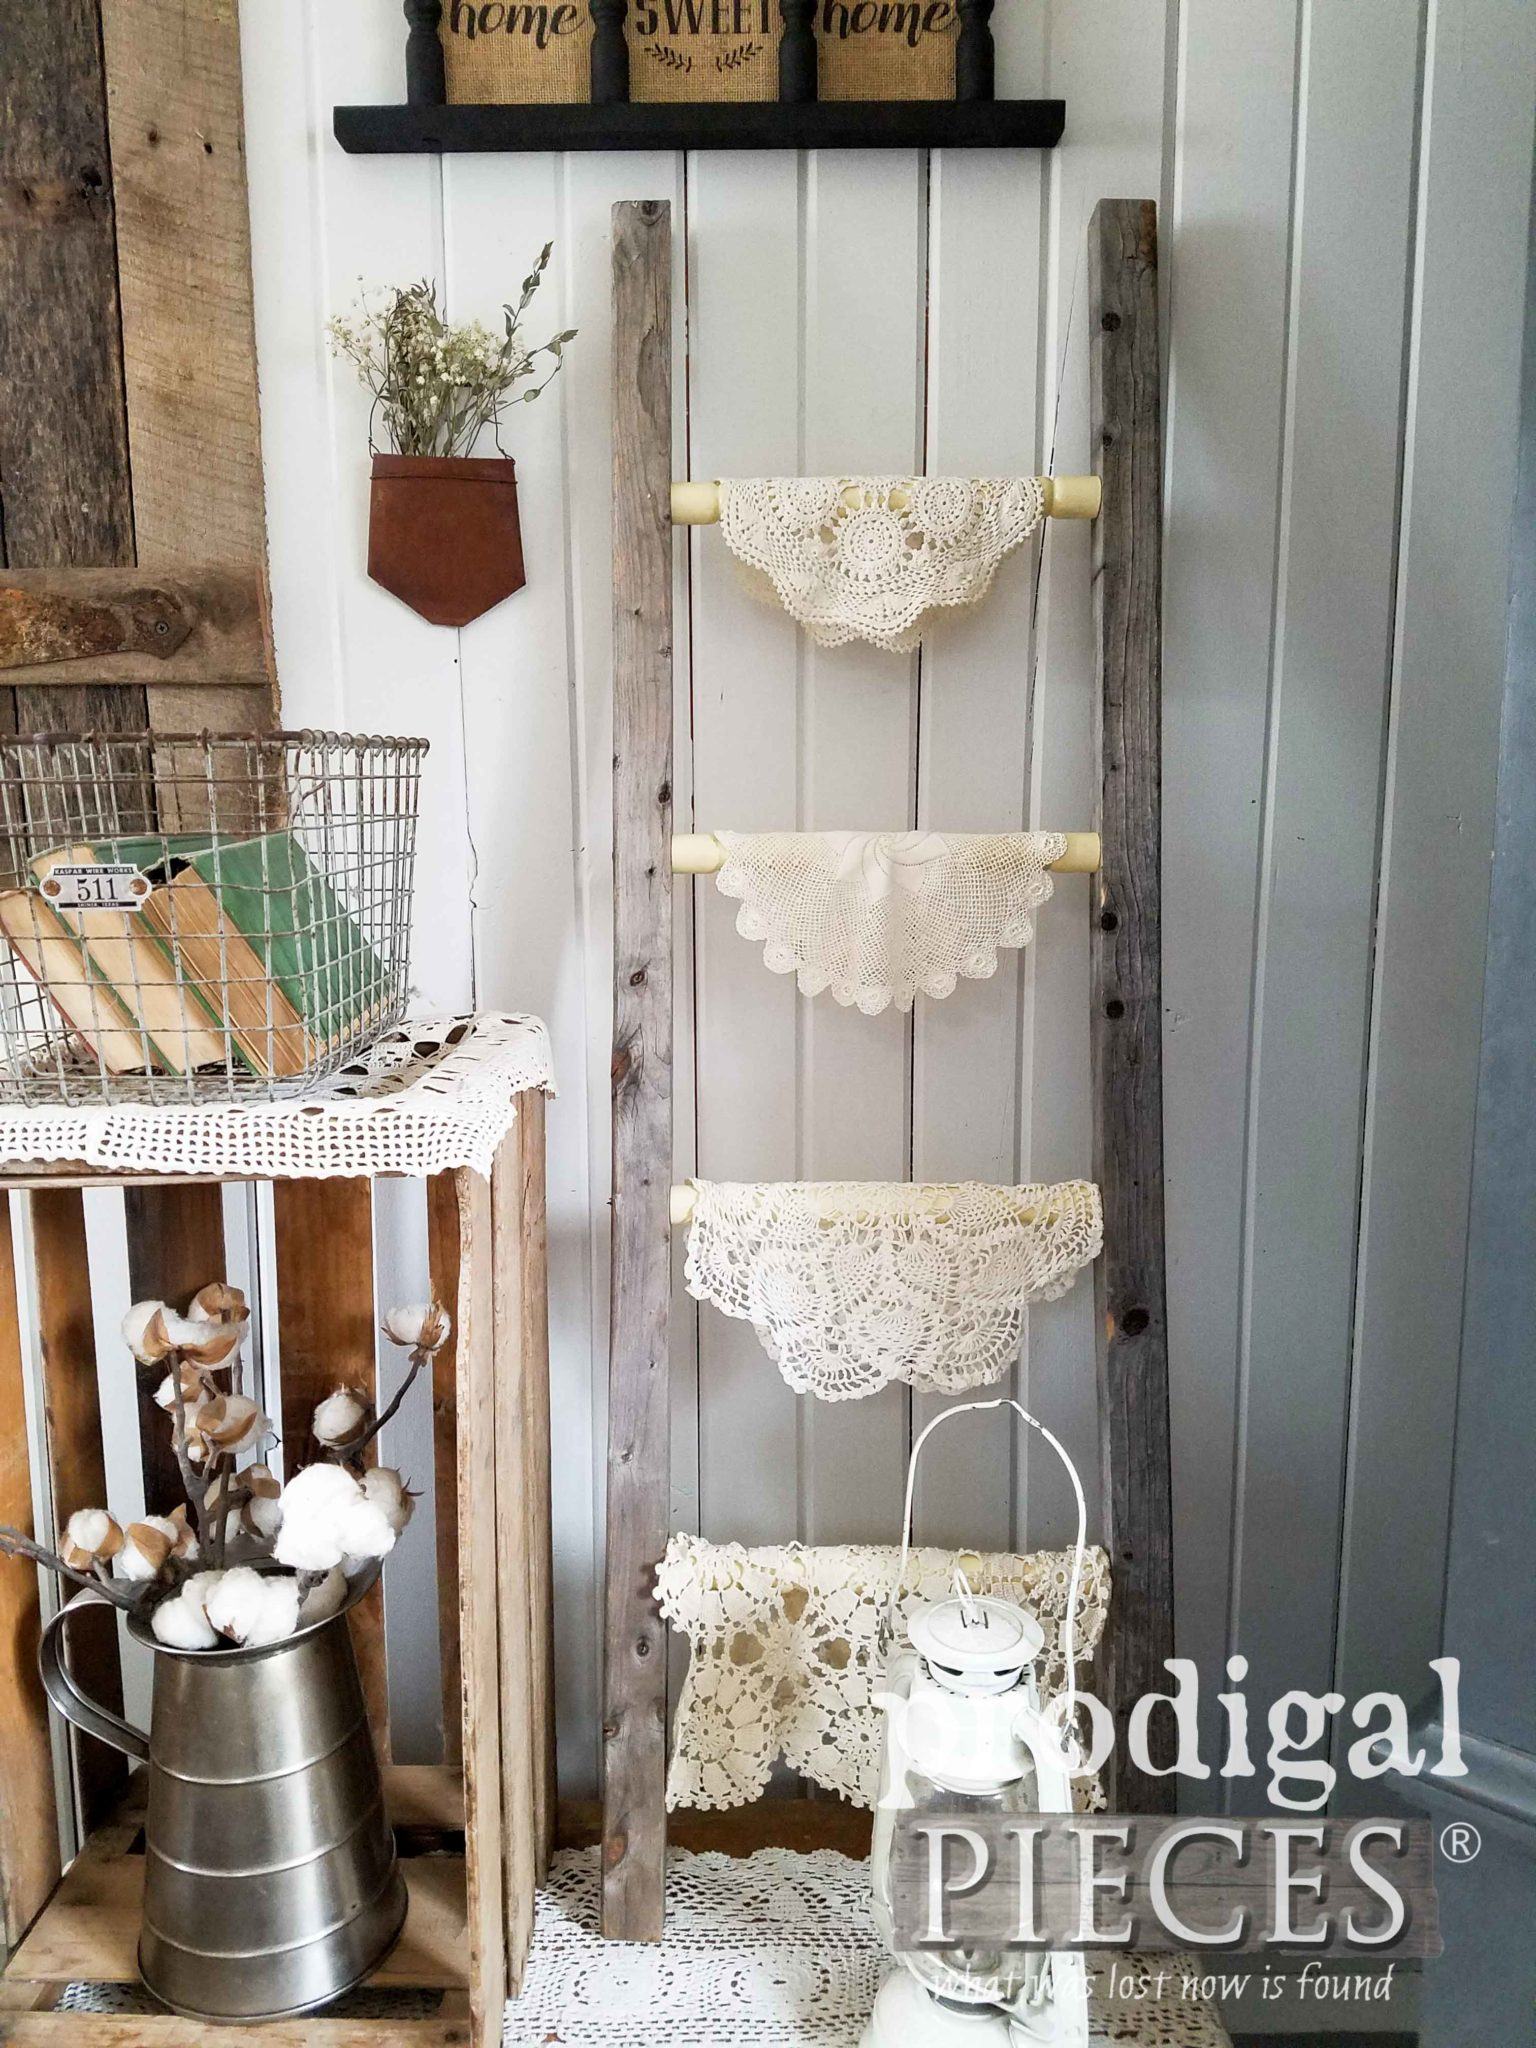 Reclaimed Farmhouse Ladder Made from Upcycled Parts by Prodigal Pieces | prodigalpieces.com